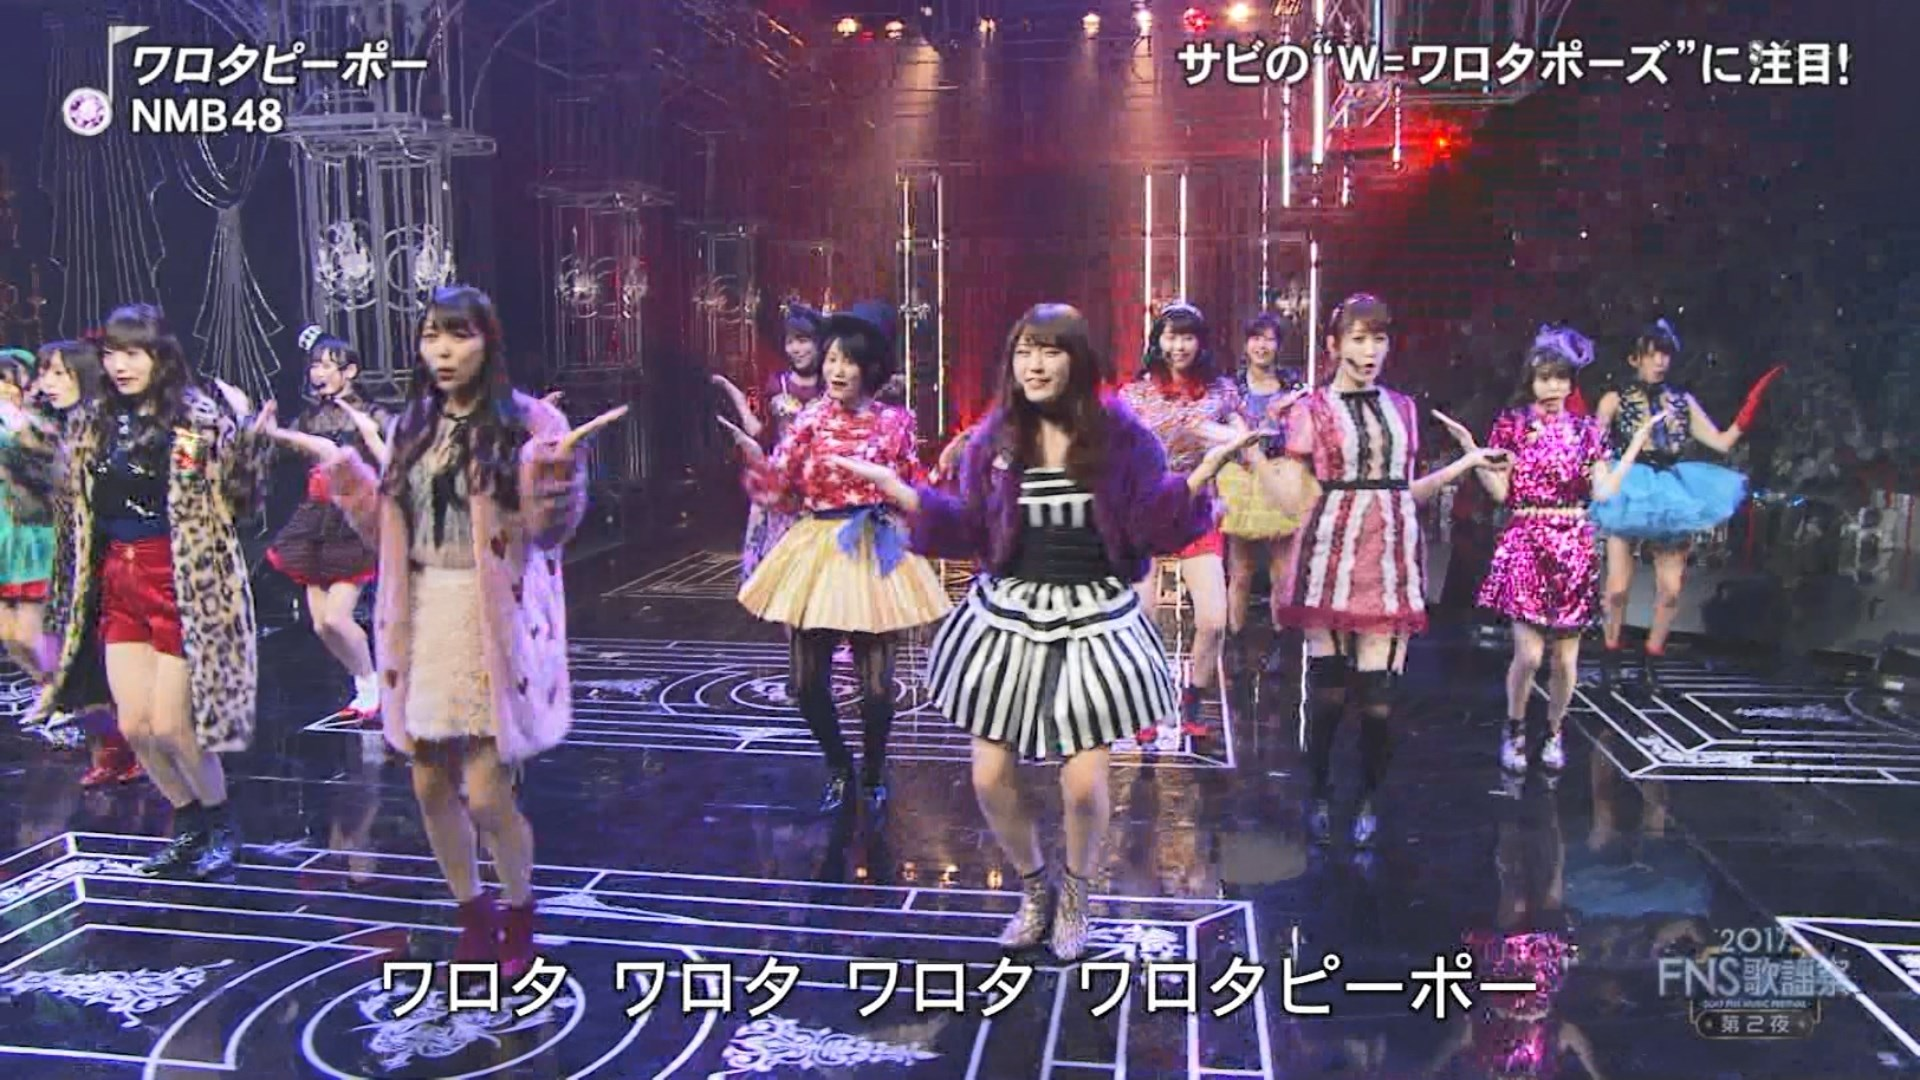 2017FNS歌謡祭第2夜・NMB48ワロタピーポーキャプ-061